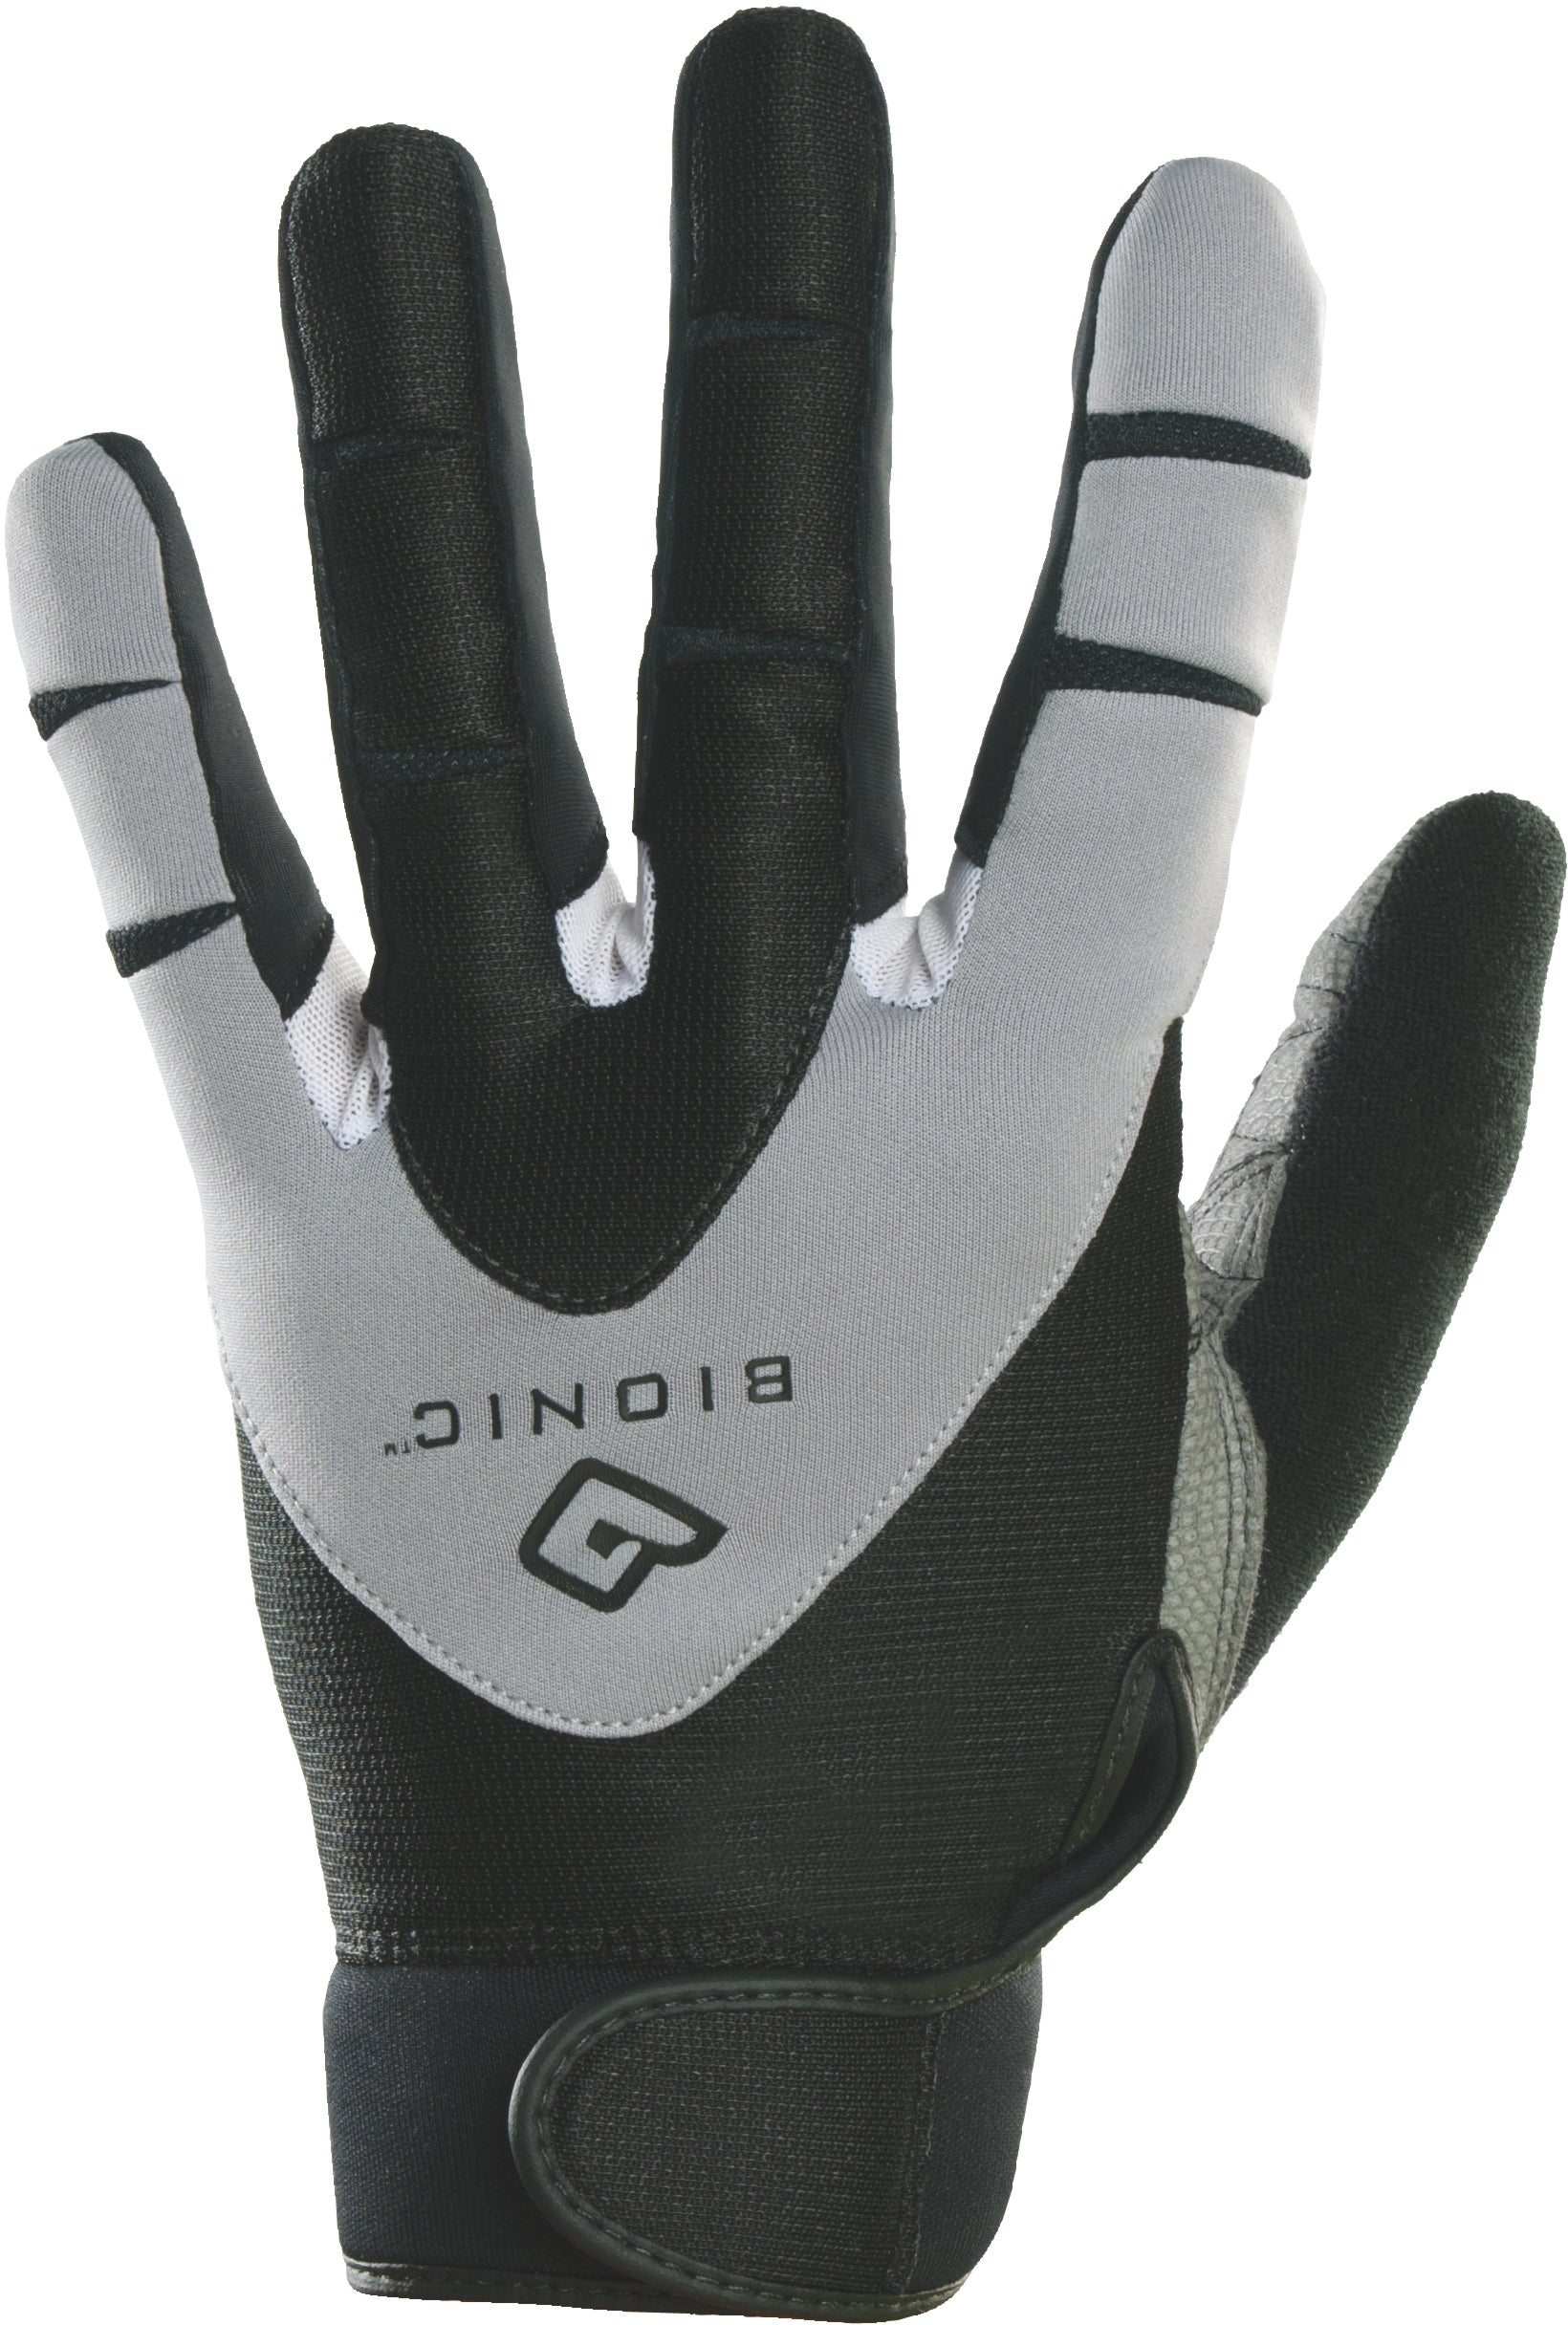 Bionic - Fitness Performance - Black/Grey